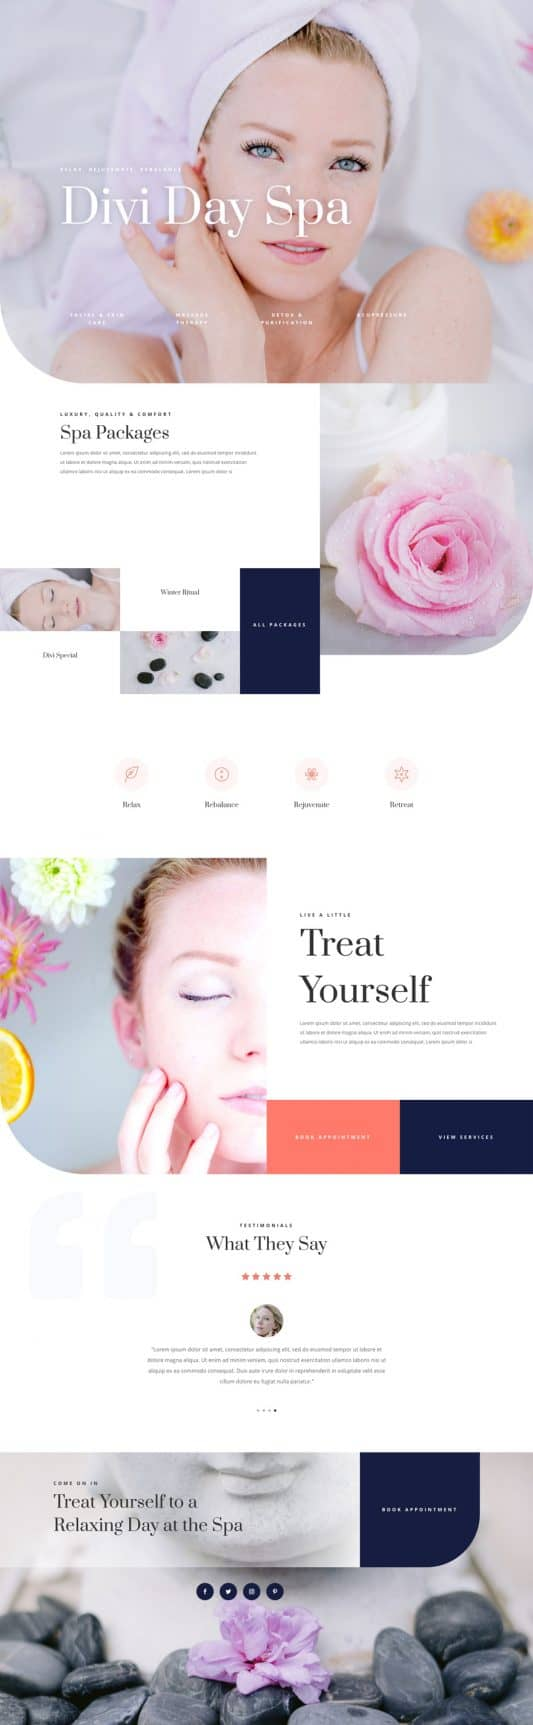 Day Spa Web Design 4